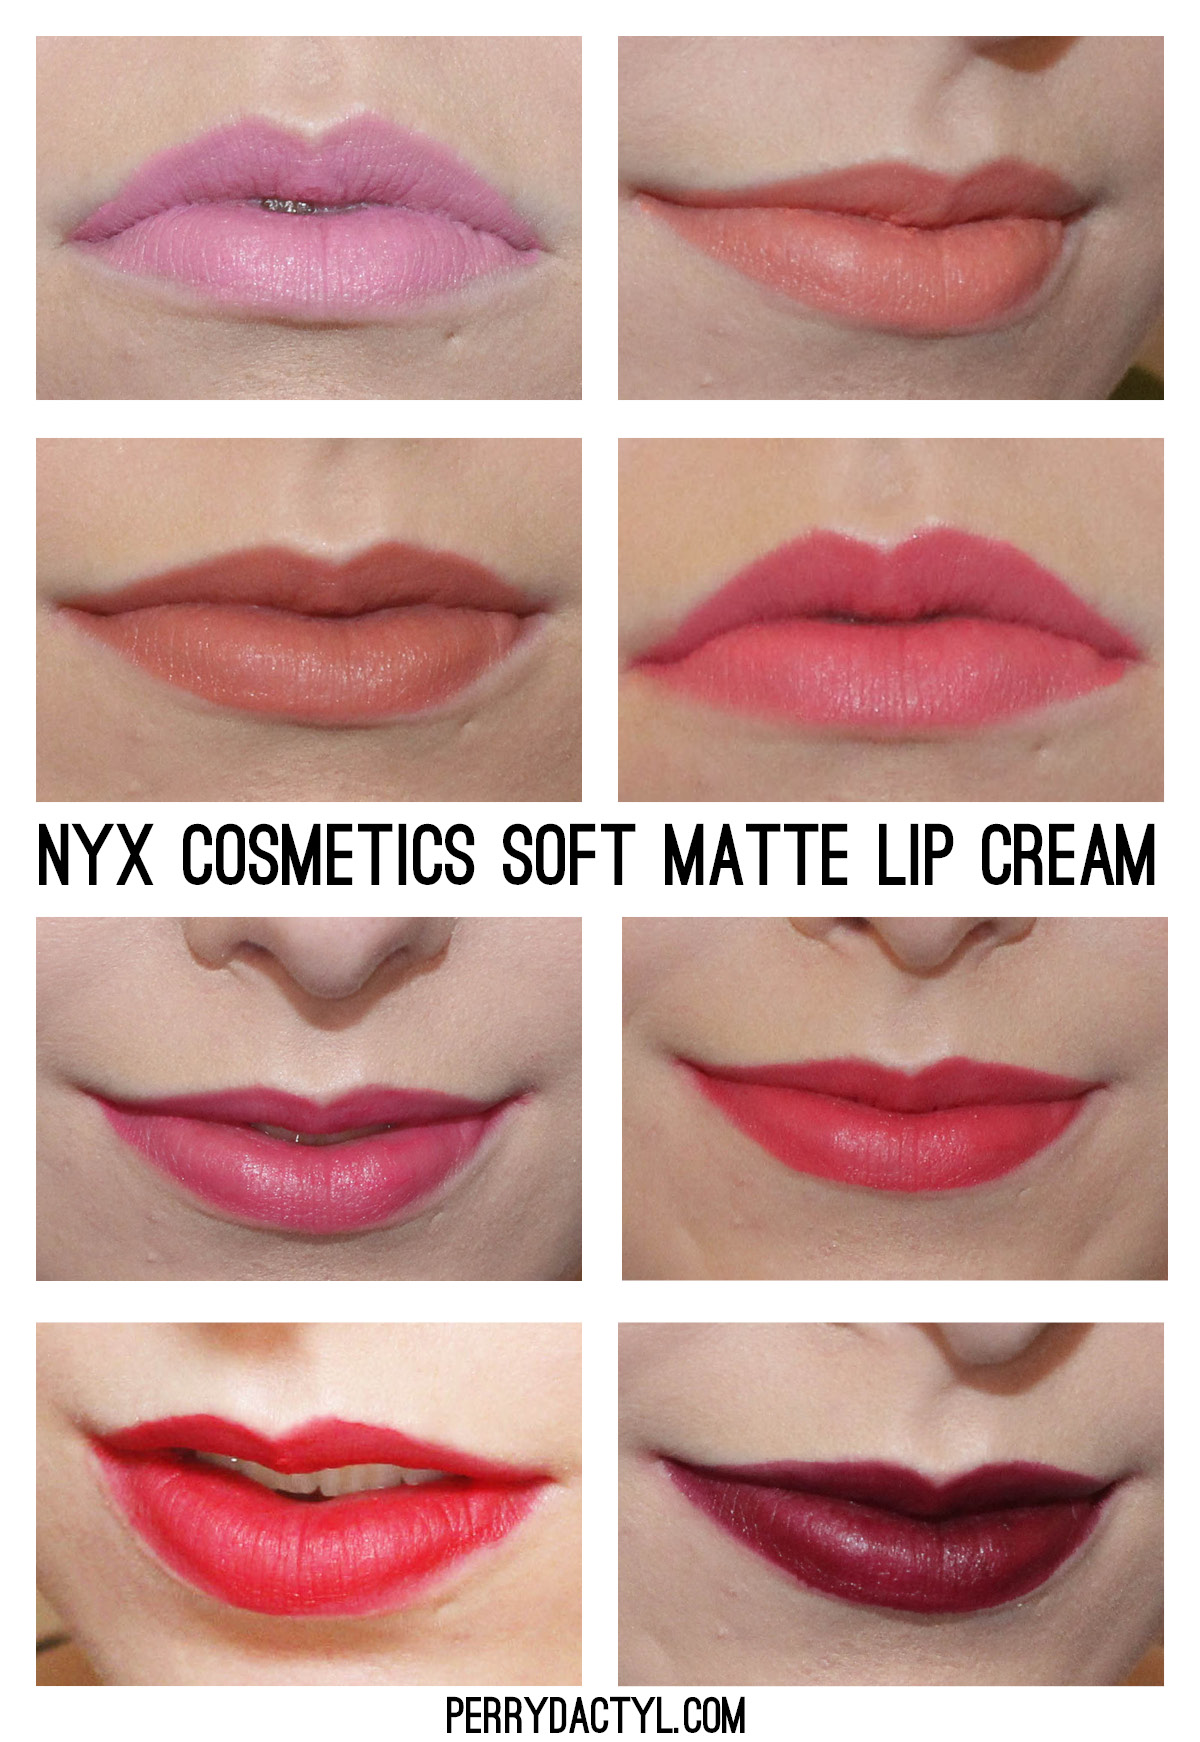 @NYX Cosmetics Soft Matte Lip Cream comes in amazing colors and lasts all day.